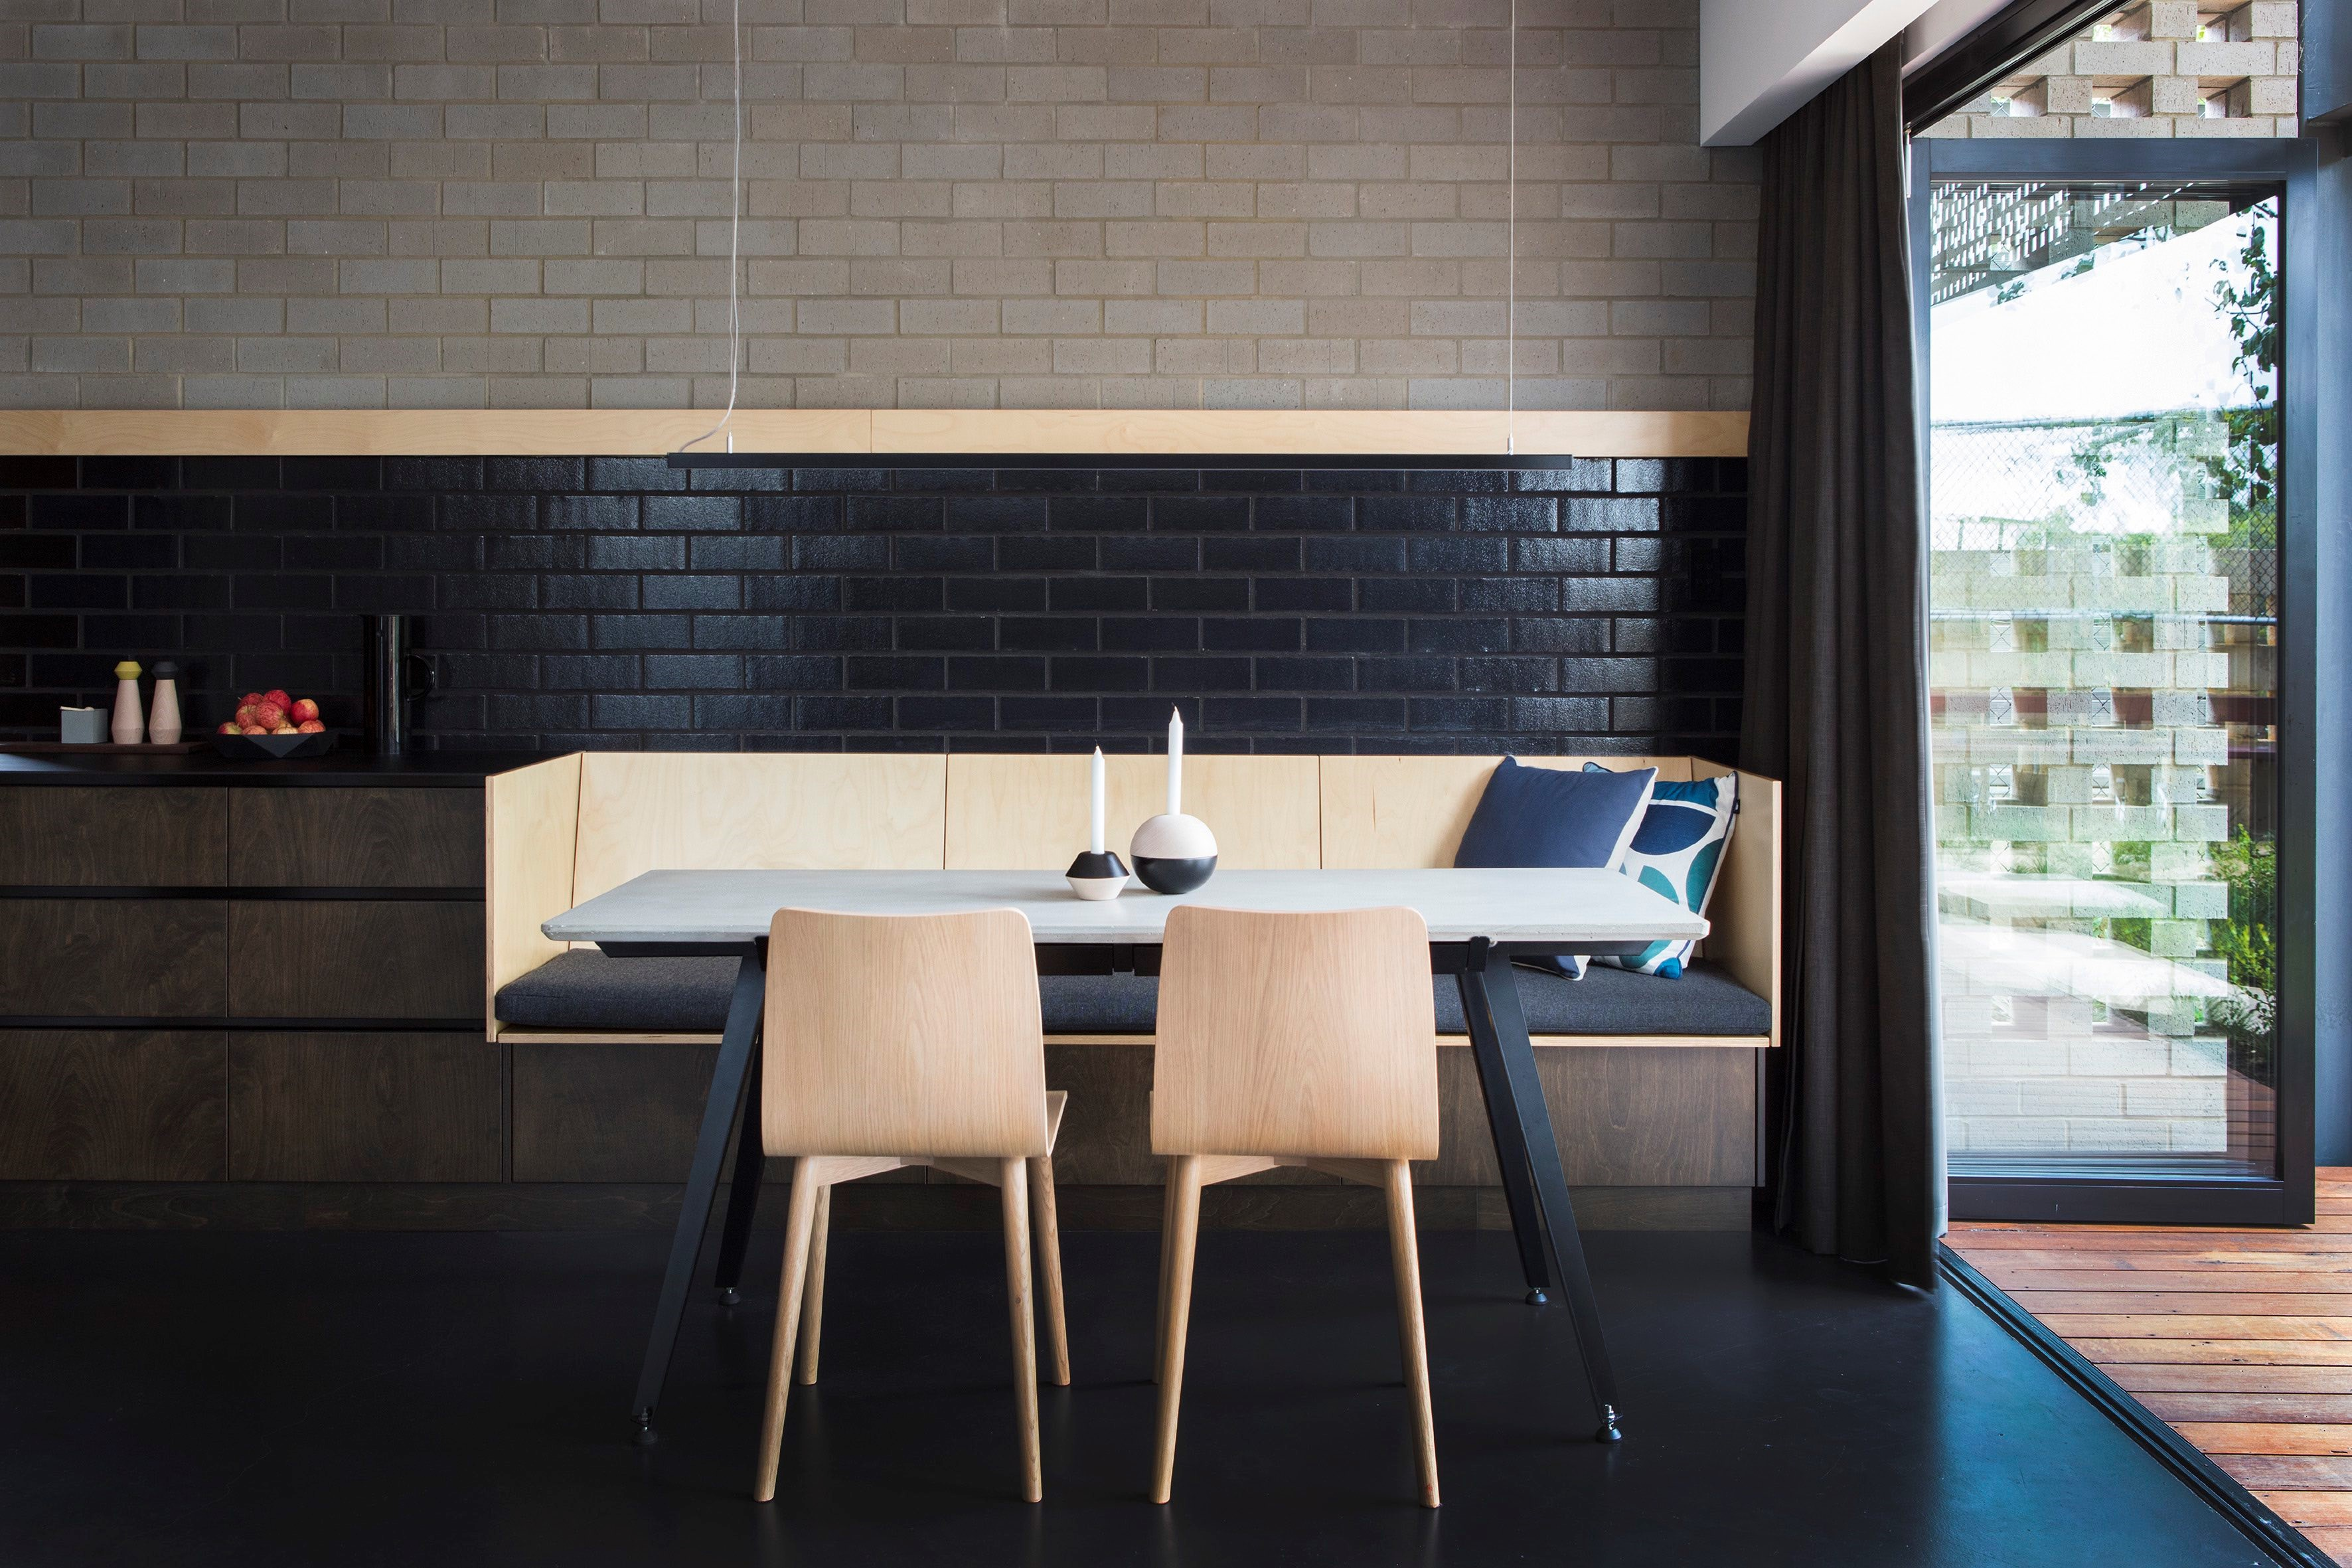 Blinco Street House Facilitates This Unique Process Through The Layering Of Private To Social Zones Leading The